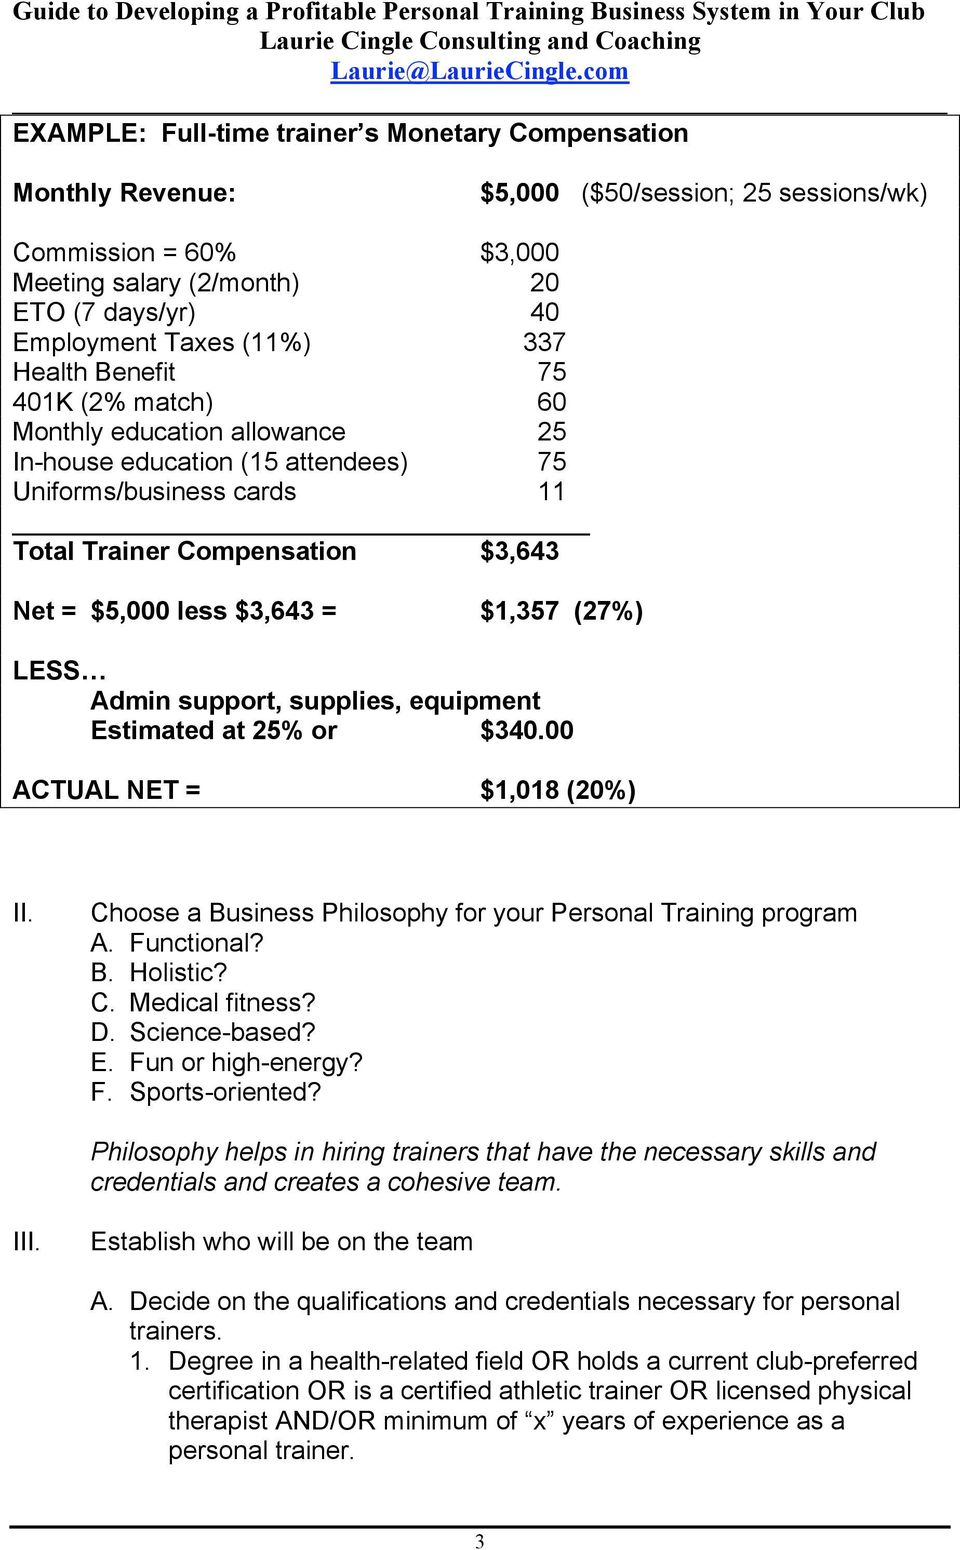 $1,357 (27%) LESS Admin support, supplies, equipment Estimated at 25% or $340.00 ACTUAL NET = $1,018 (20%) II. Choose a Business Philosophy for your Personal Training program A. Functional? B. Holistic?